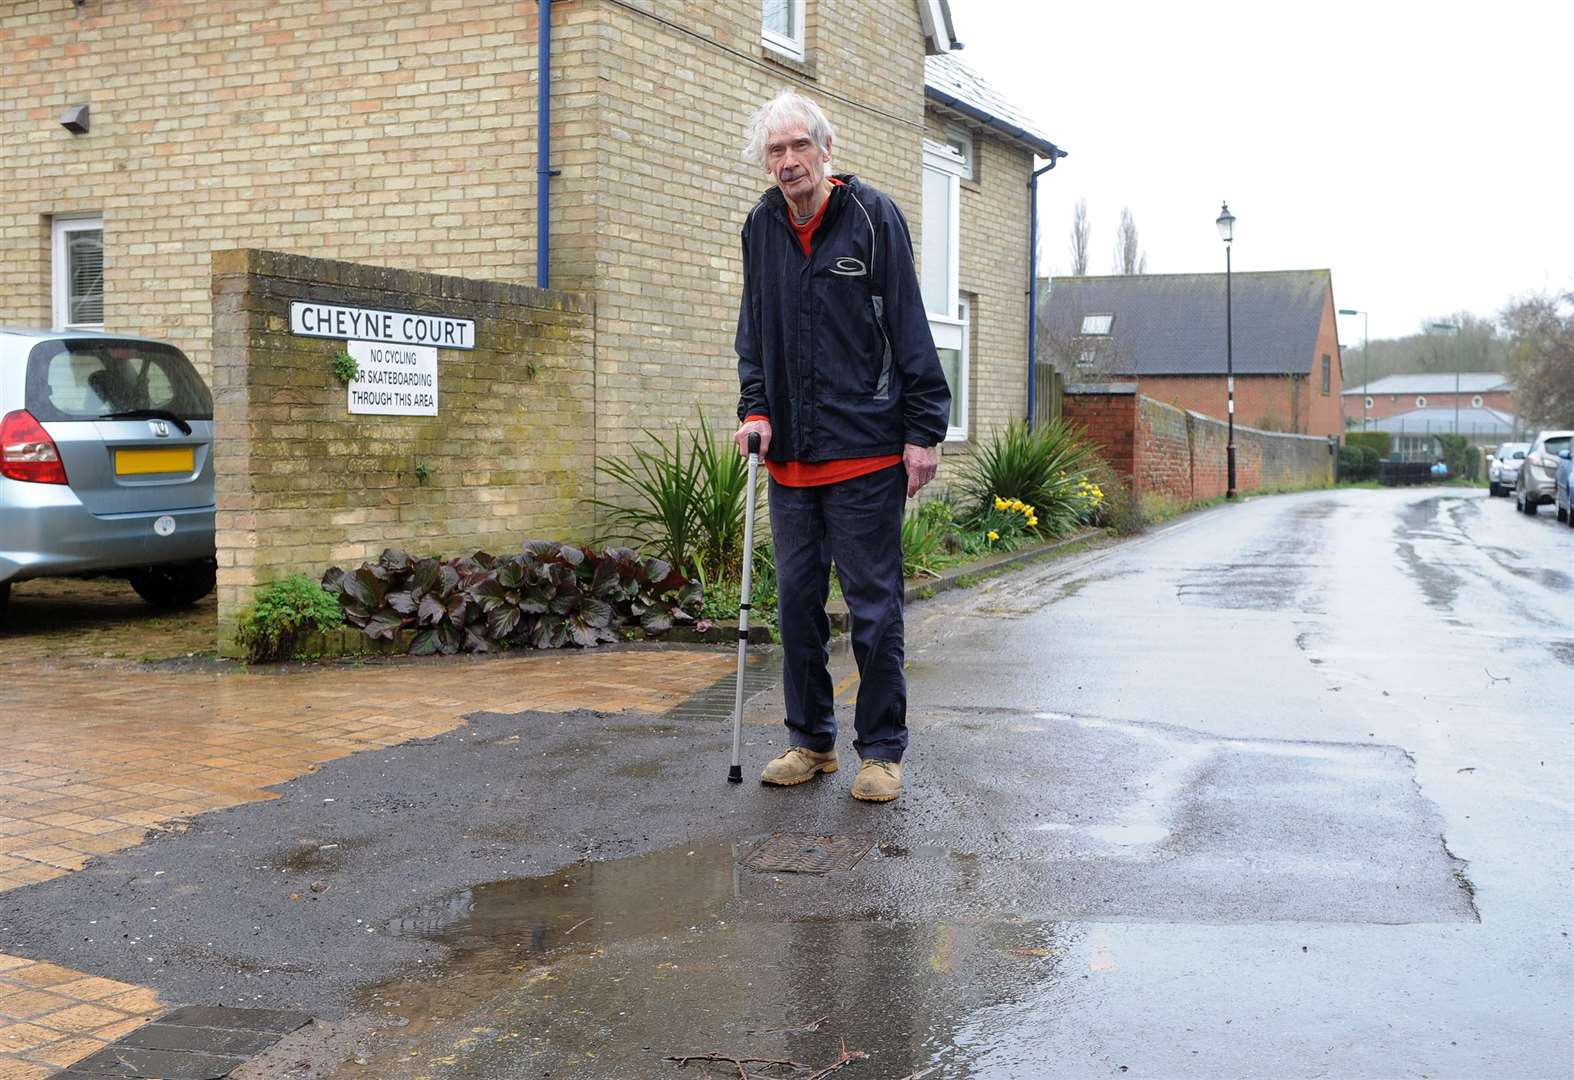 Sudbury resident criticises condition of road after works to repair leak